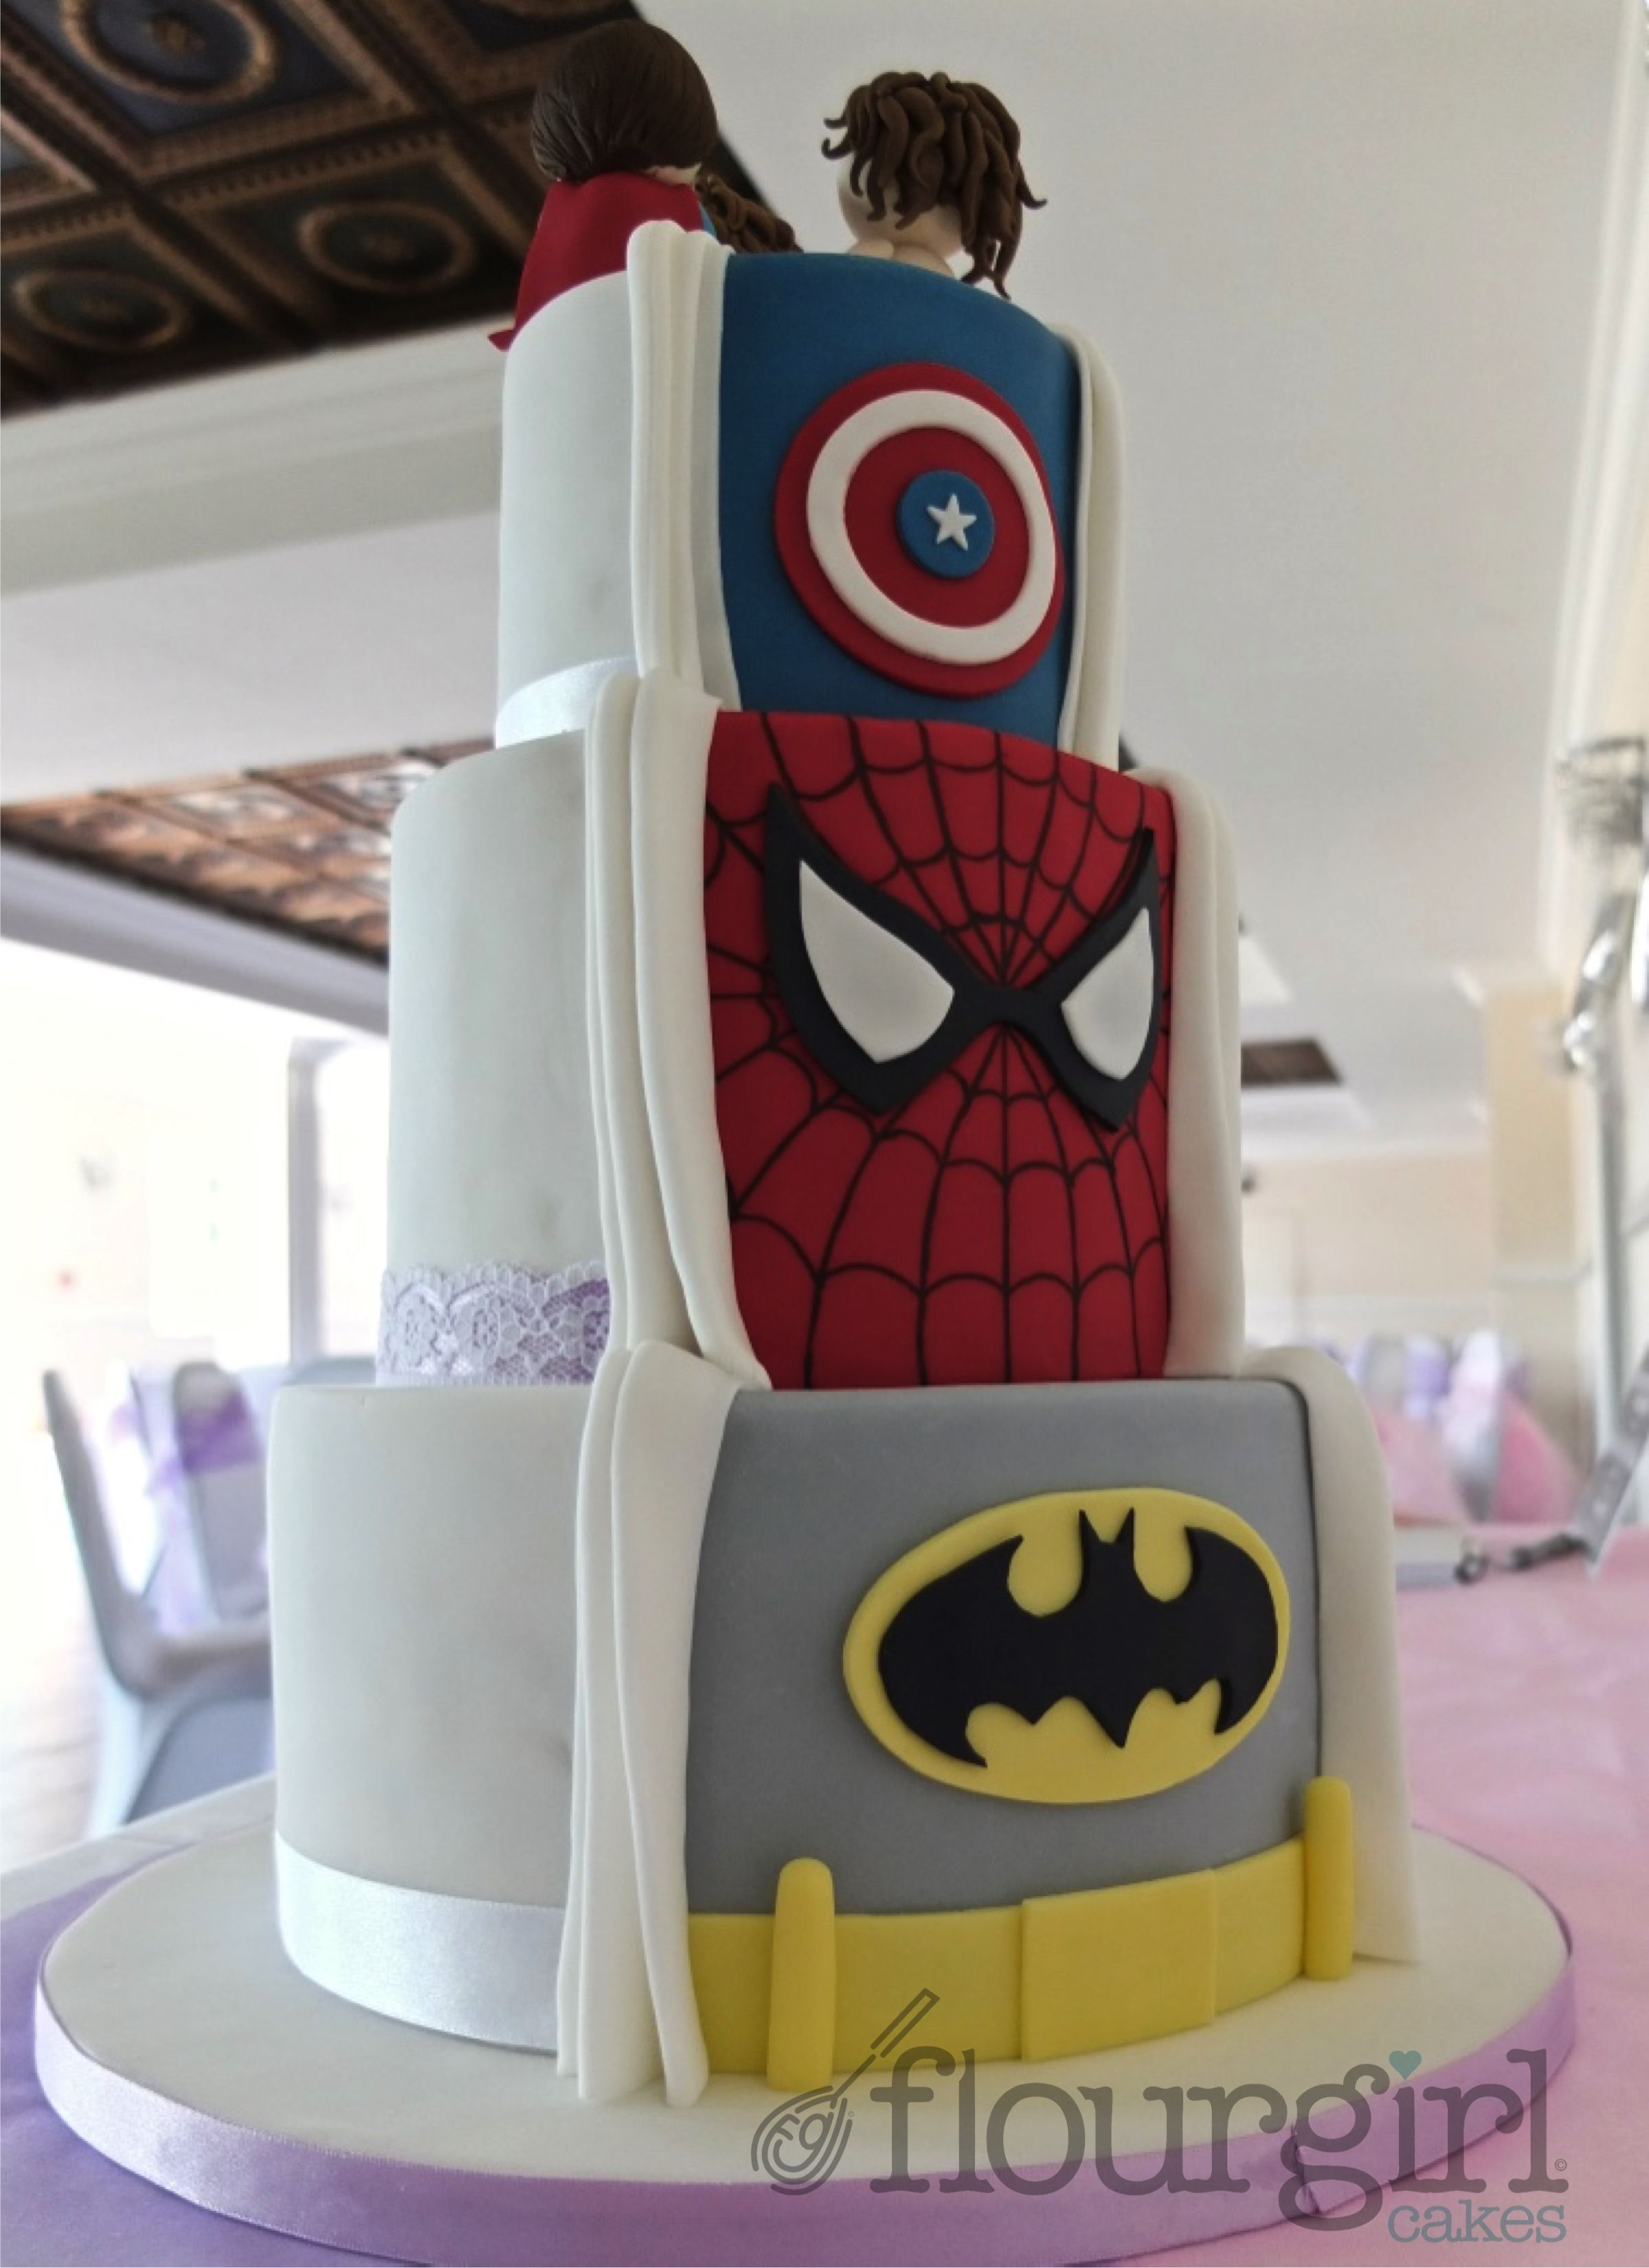 Secret Superhero Wedding Cake  What a terrific idea  reminds me of     Secret Superhero Wedding Cake  What a terrific idea  reminds me of superman  pulling his shirt open